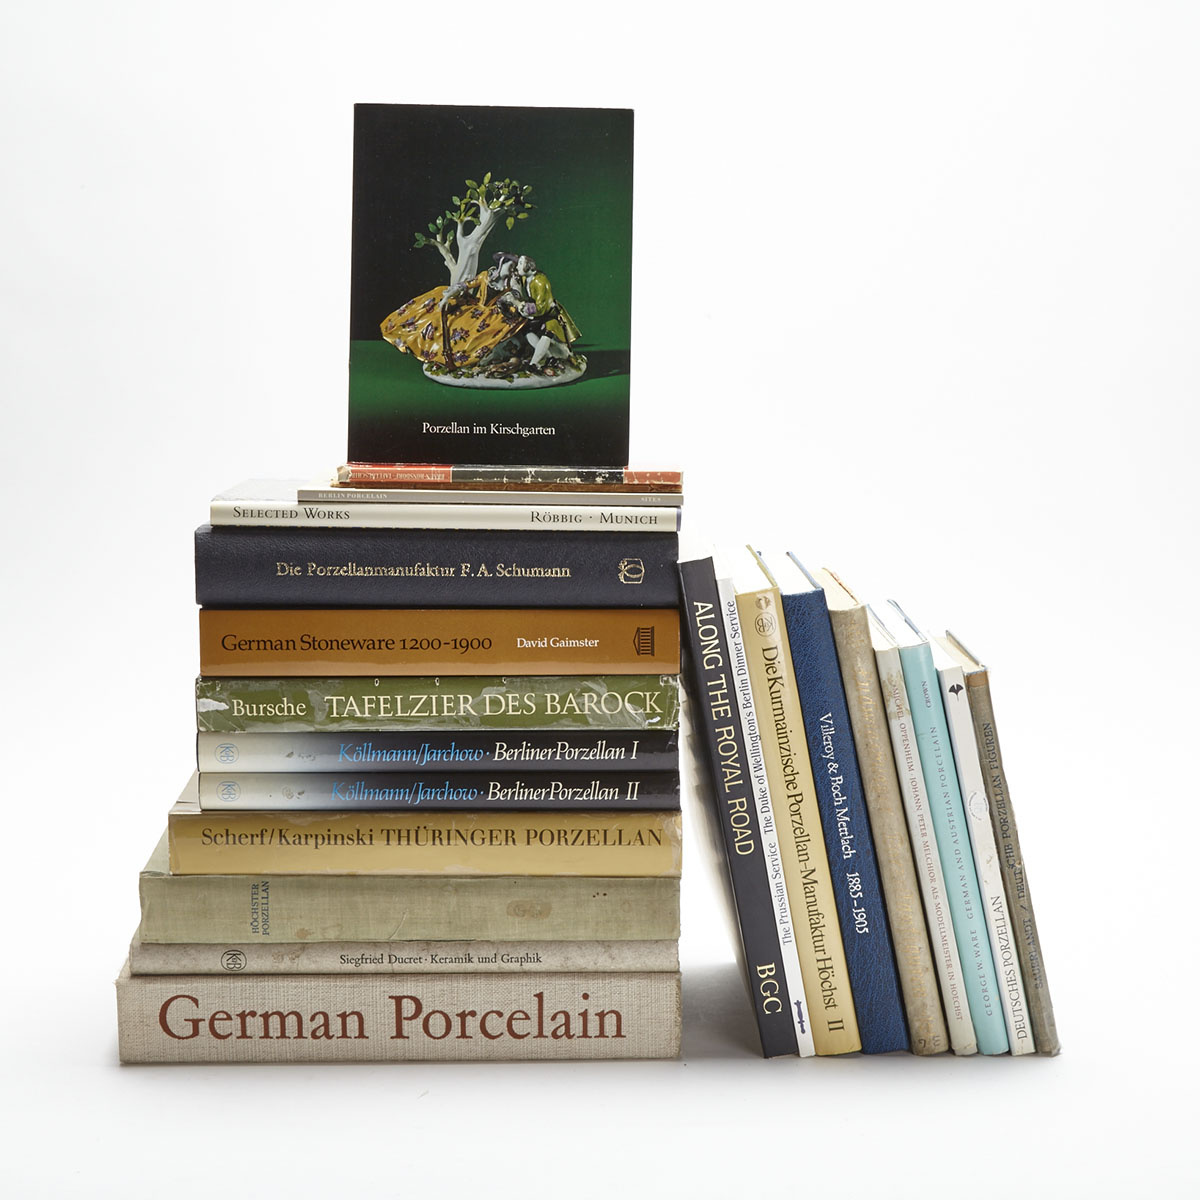 German Pottery and Porcelain (23 volumes)